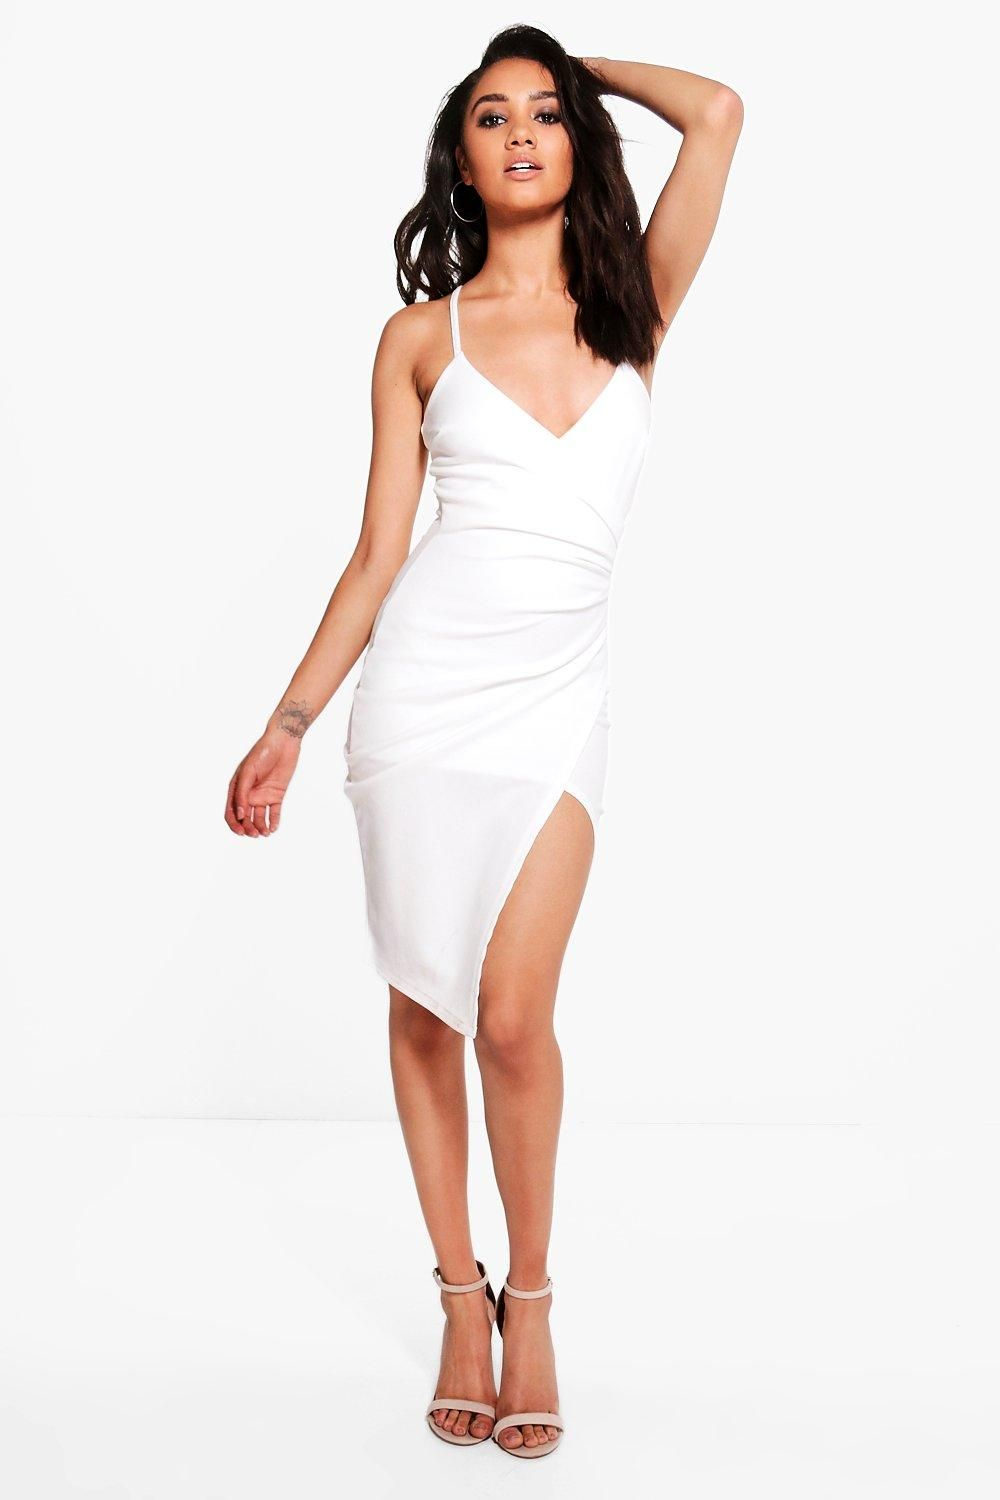 a3b35b6943b3c boohoo PETITE. Serving up the same statement styles in scaled down sizes, boohoo  Petite is your port of call for perfectly proportioned pieces designed to  ...